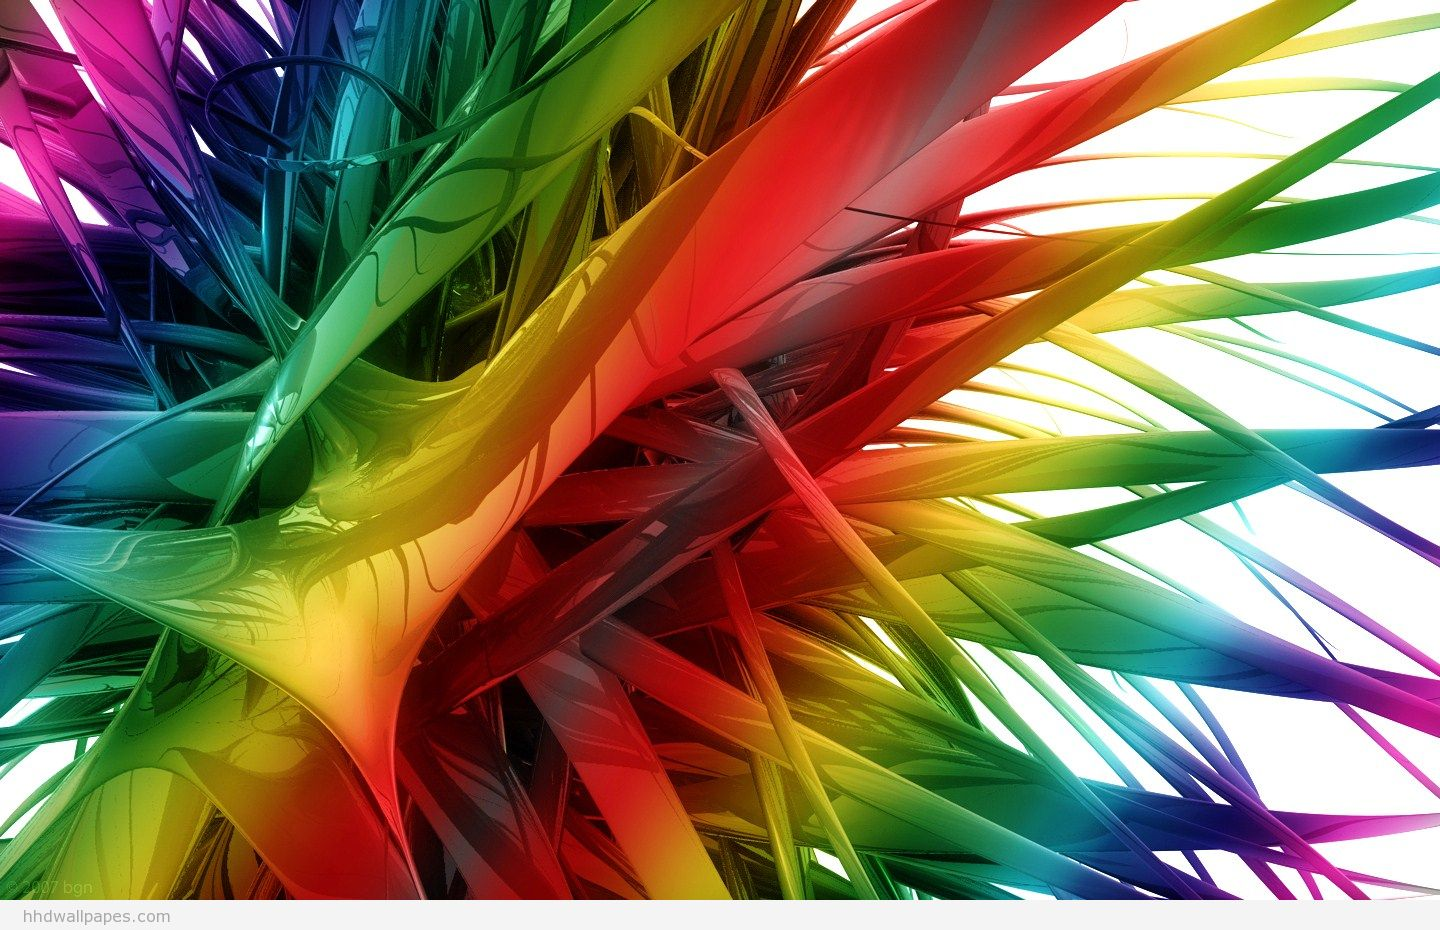 Hd Colorful Backgrounds: HD Wallpapers Colorful Abstract Desktop Backgrounds